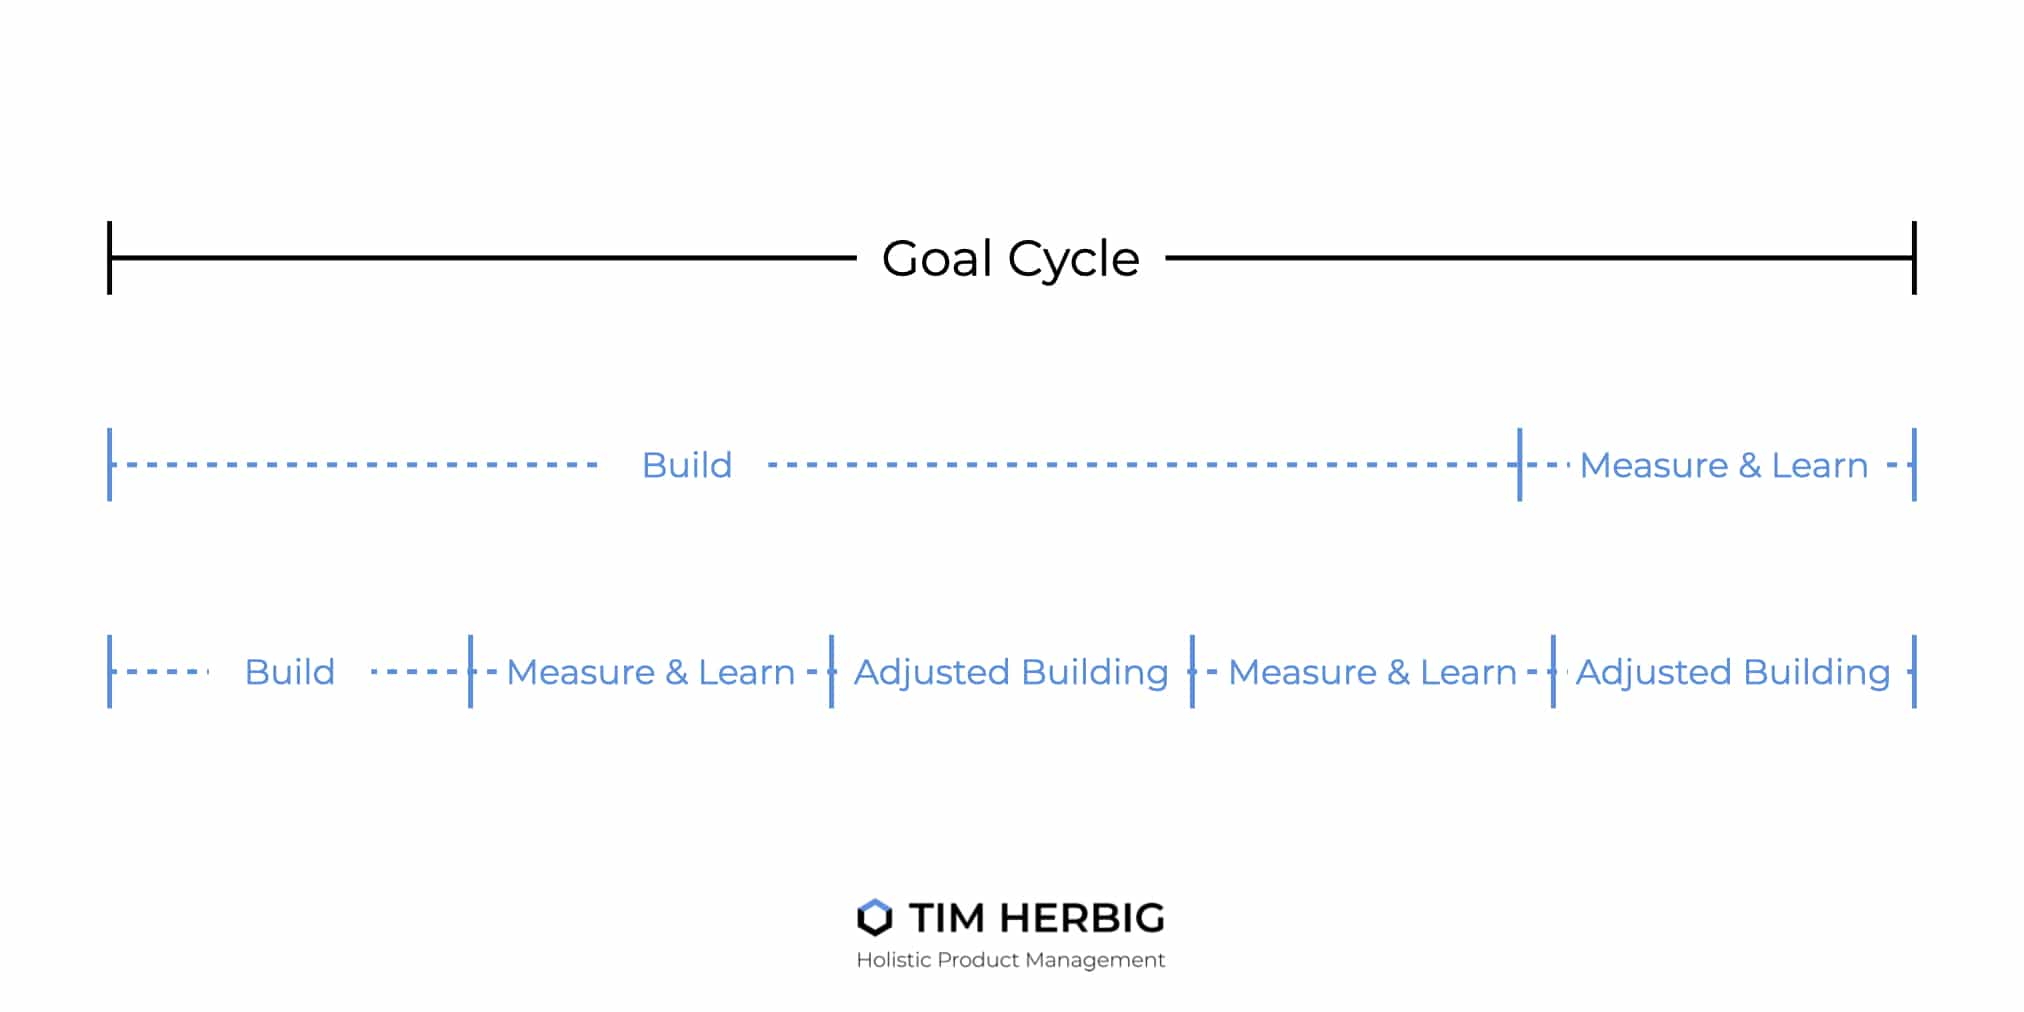 Product Goals Cycle